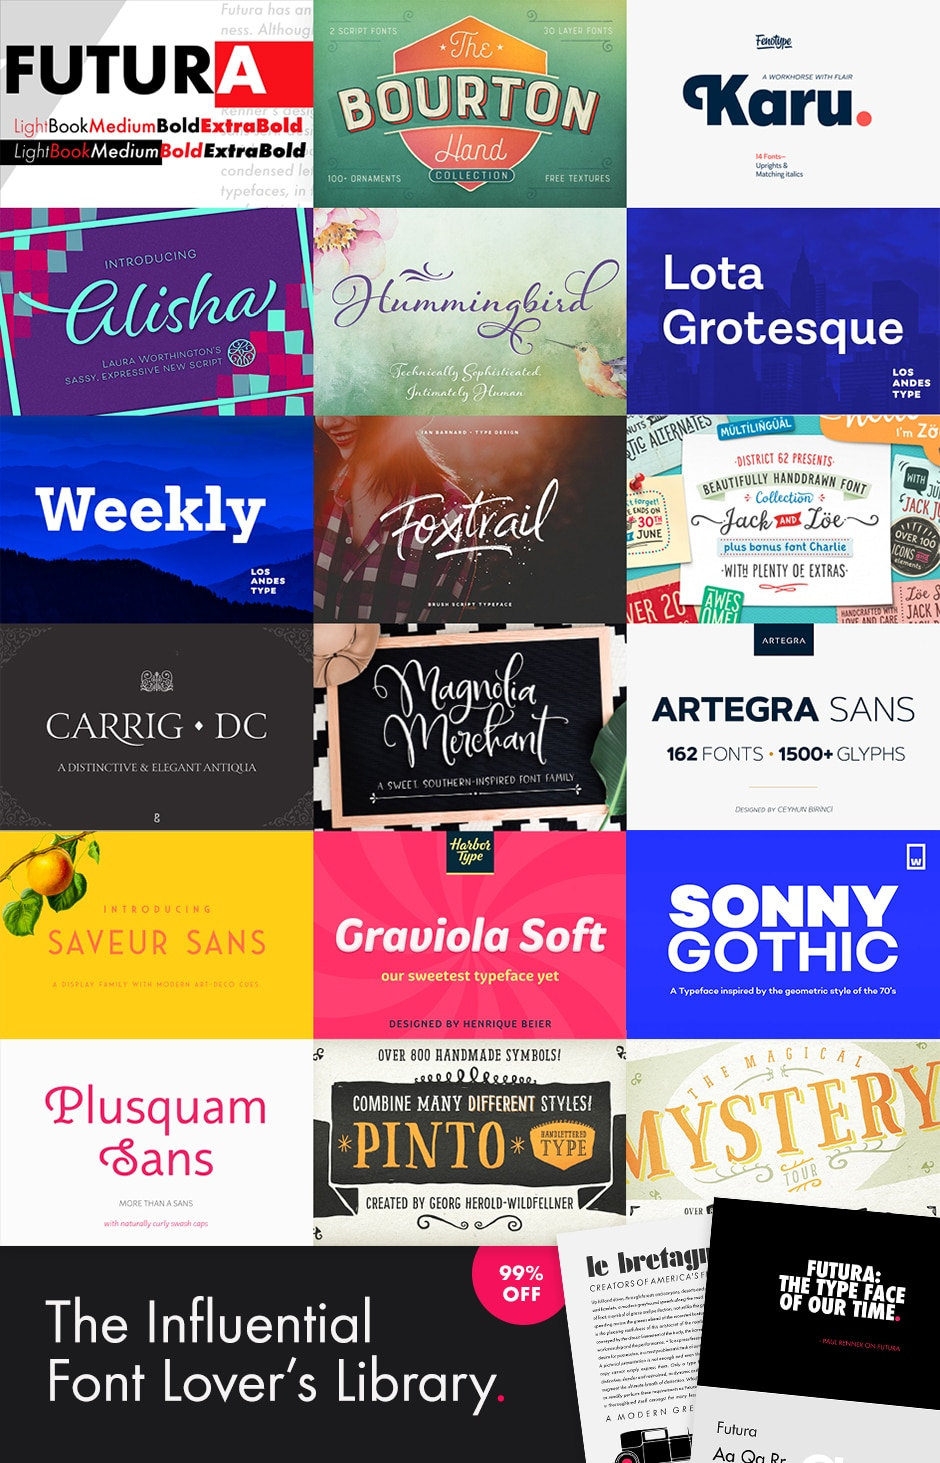 Save $3465 on The Influential Font Lover's Library | JUST™ Creative